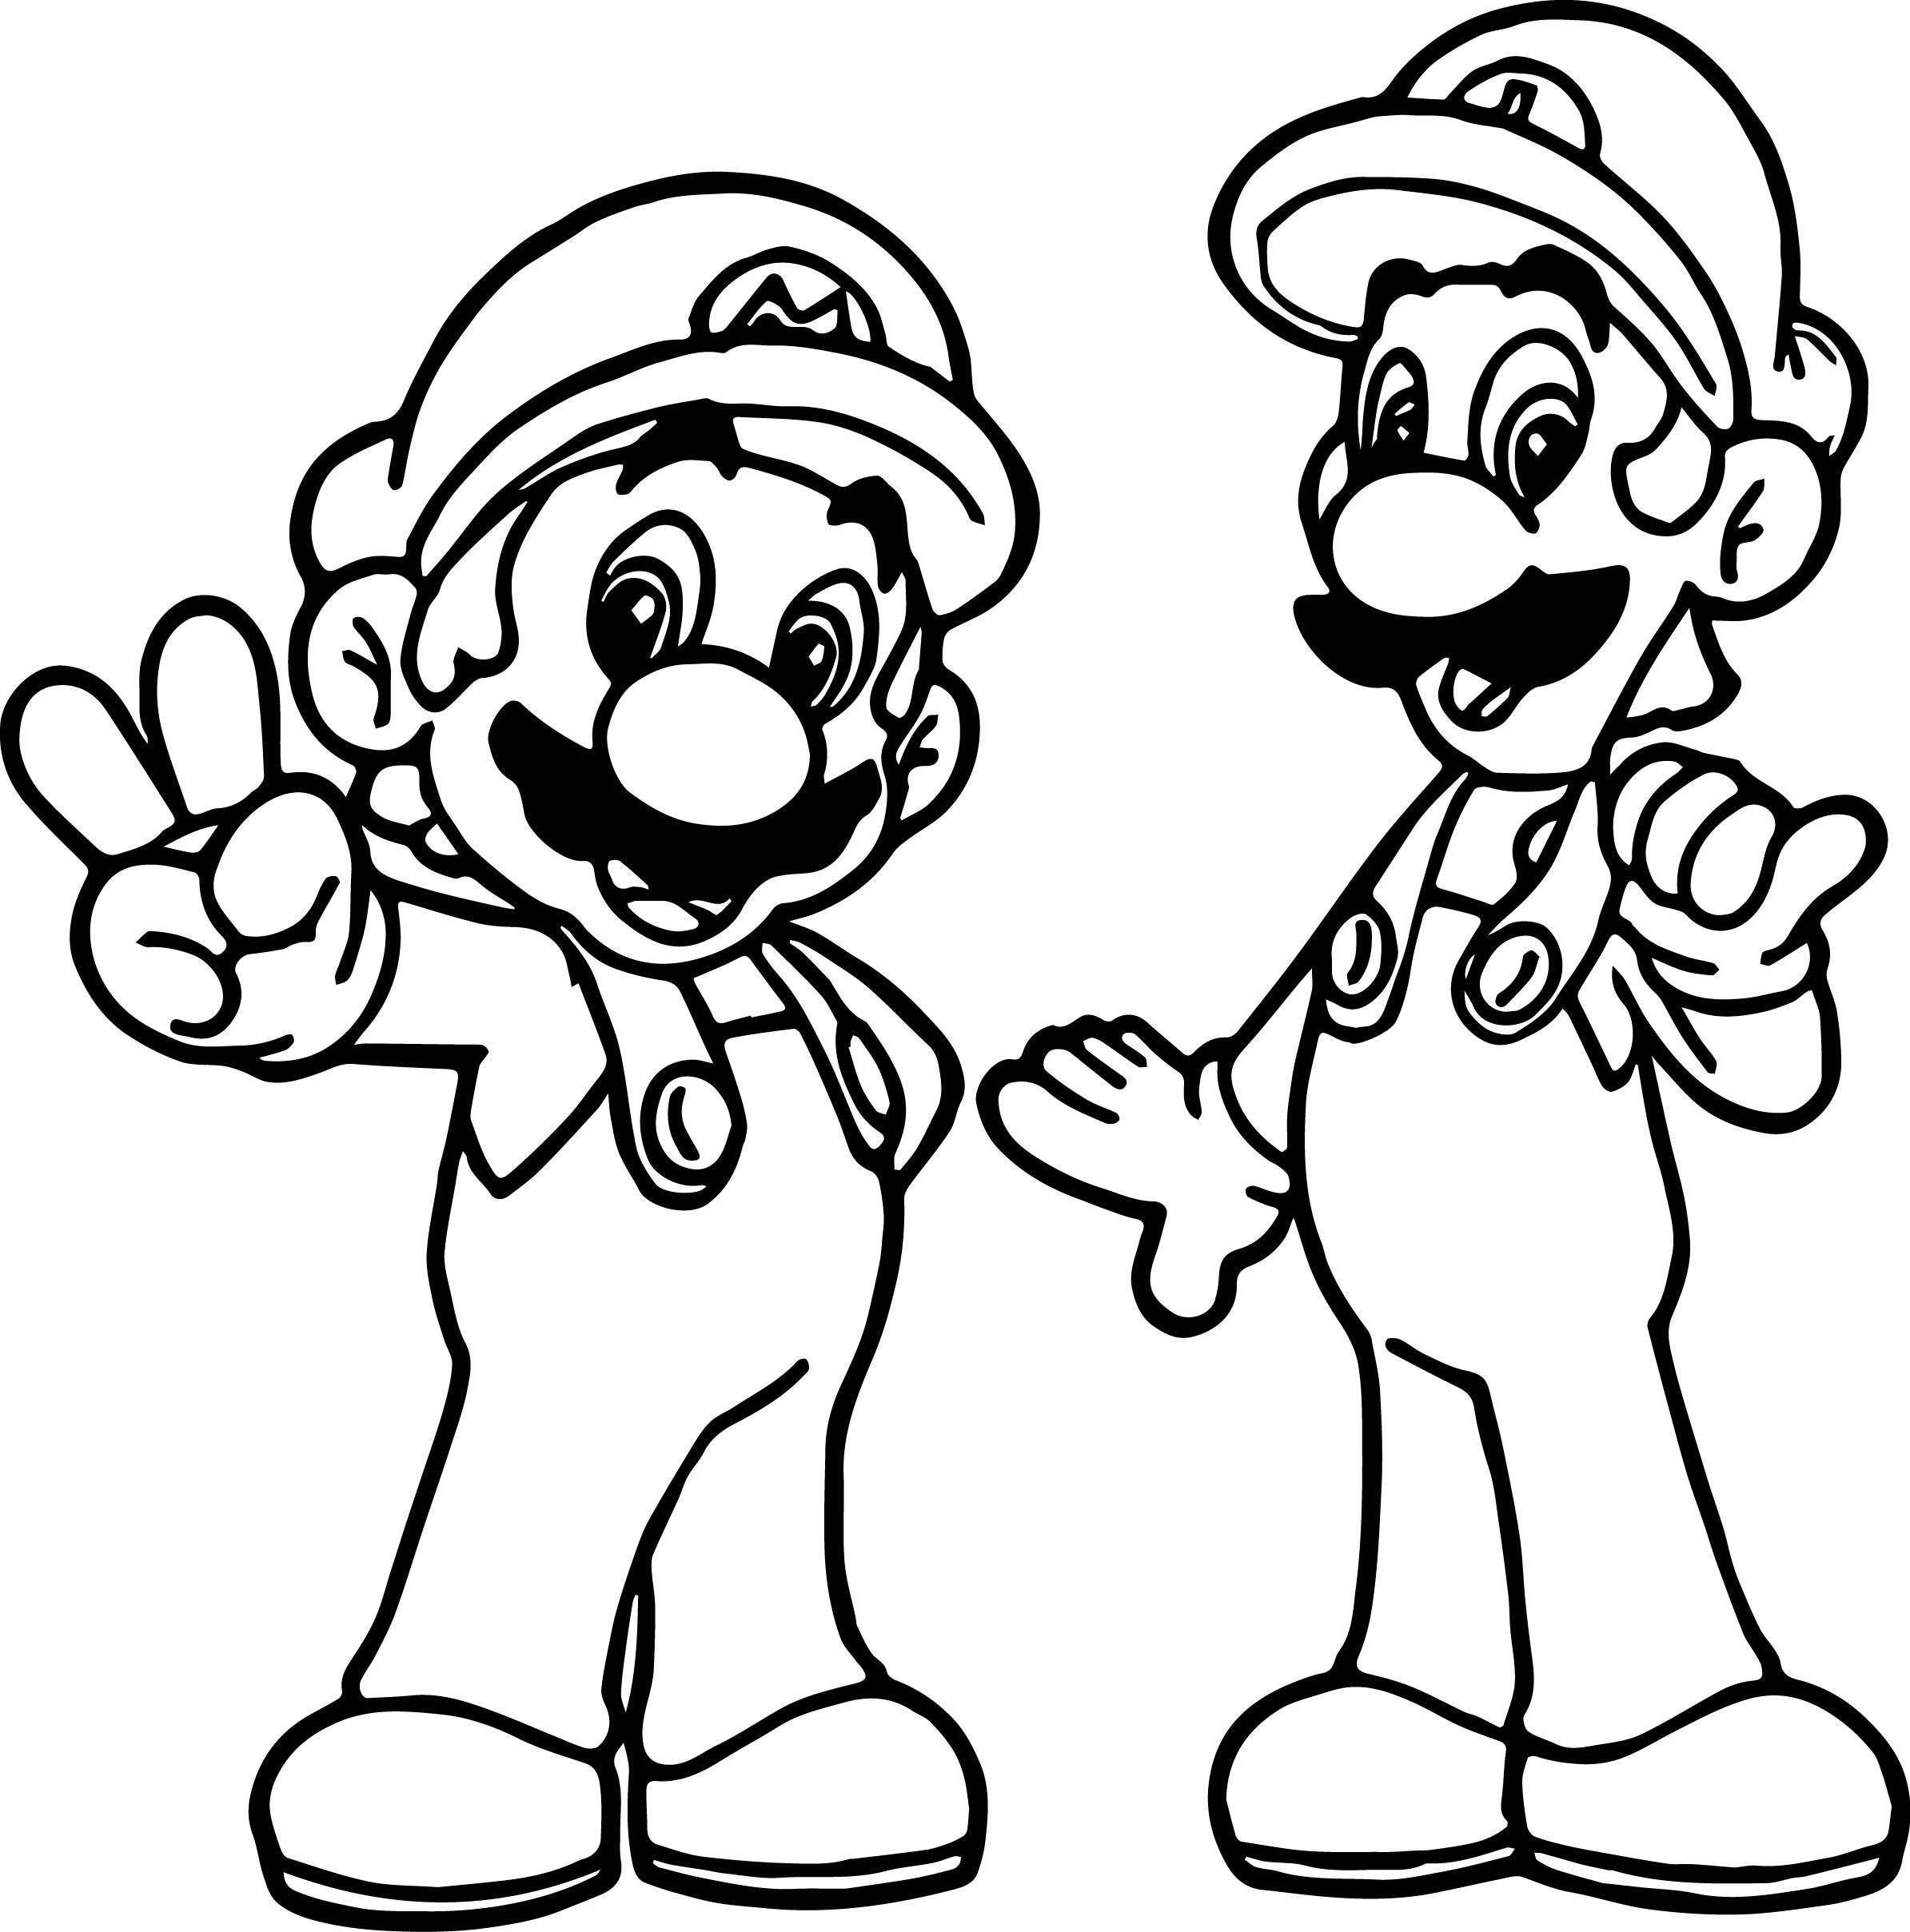 mario and sonic coloring pages mario and sonic coloring pages to print drive2vote sonic pages and mario coloring